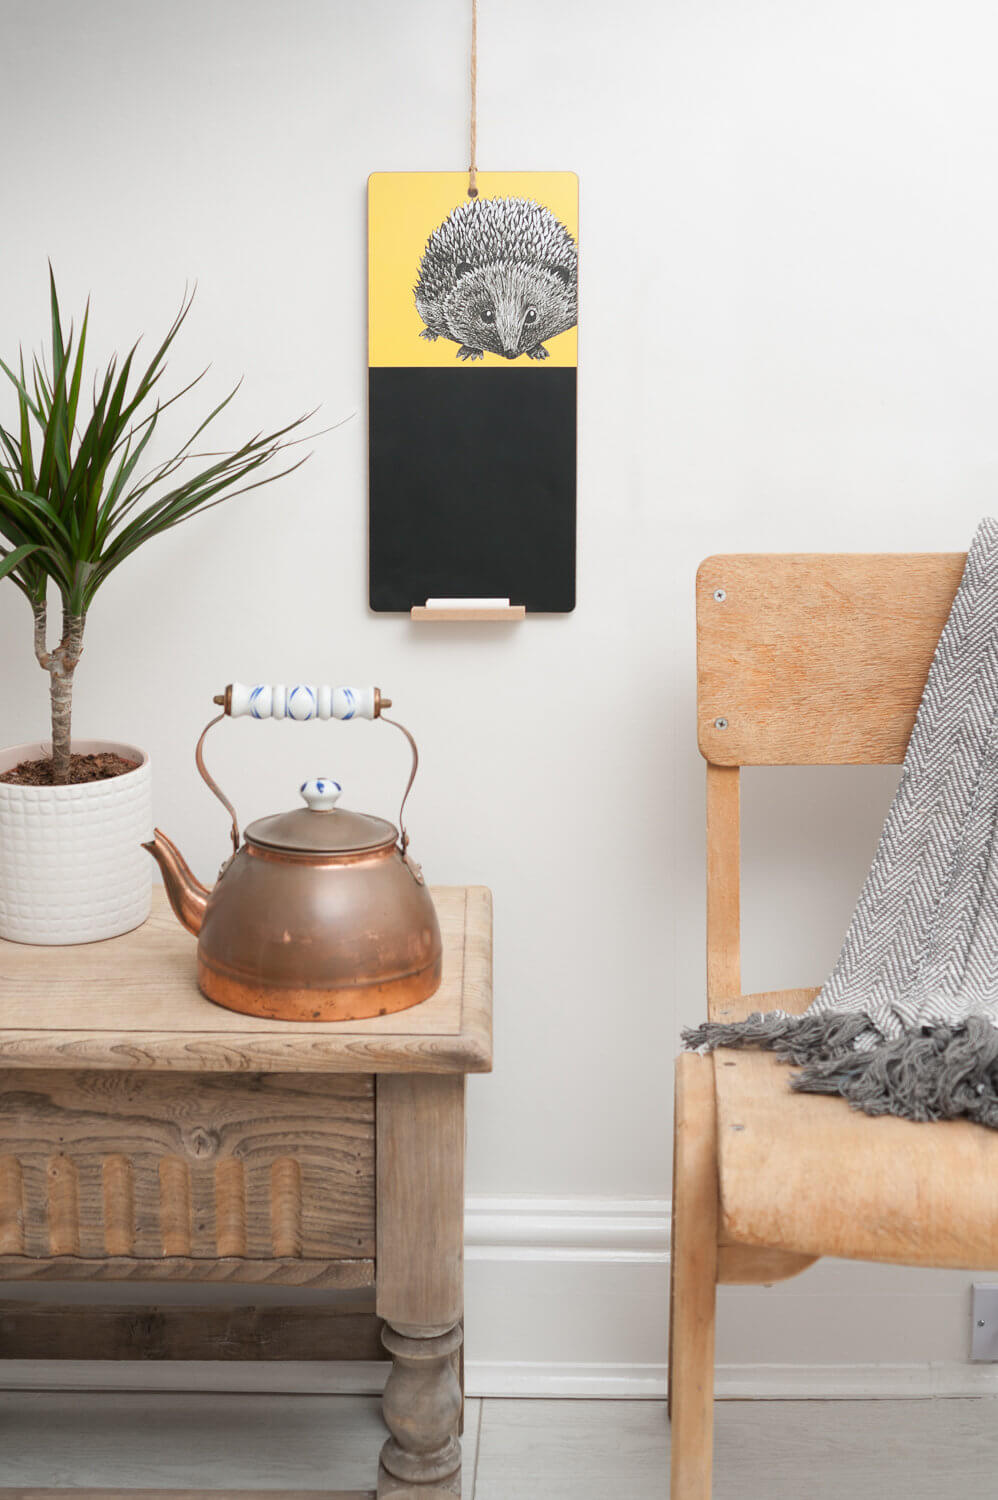 Designers Perkins and Morley lifestyle product photograph showing hedgehog chalkboard with rustic furniture